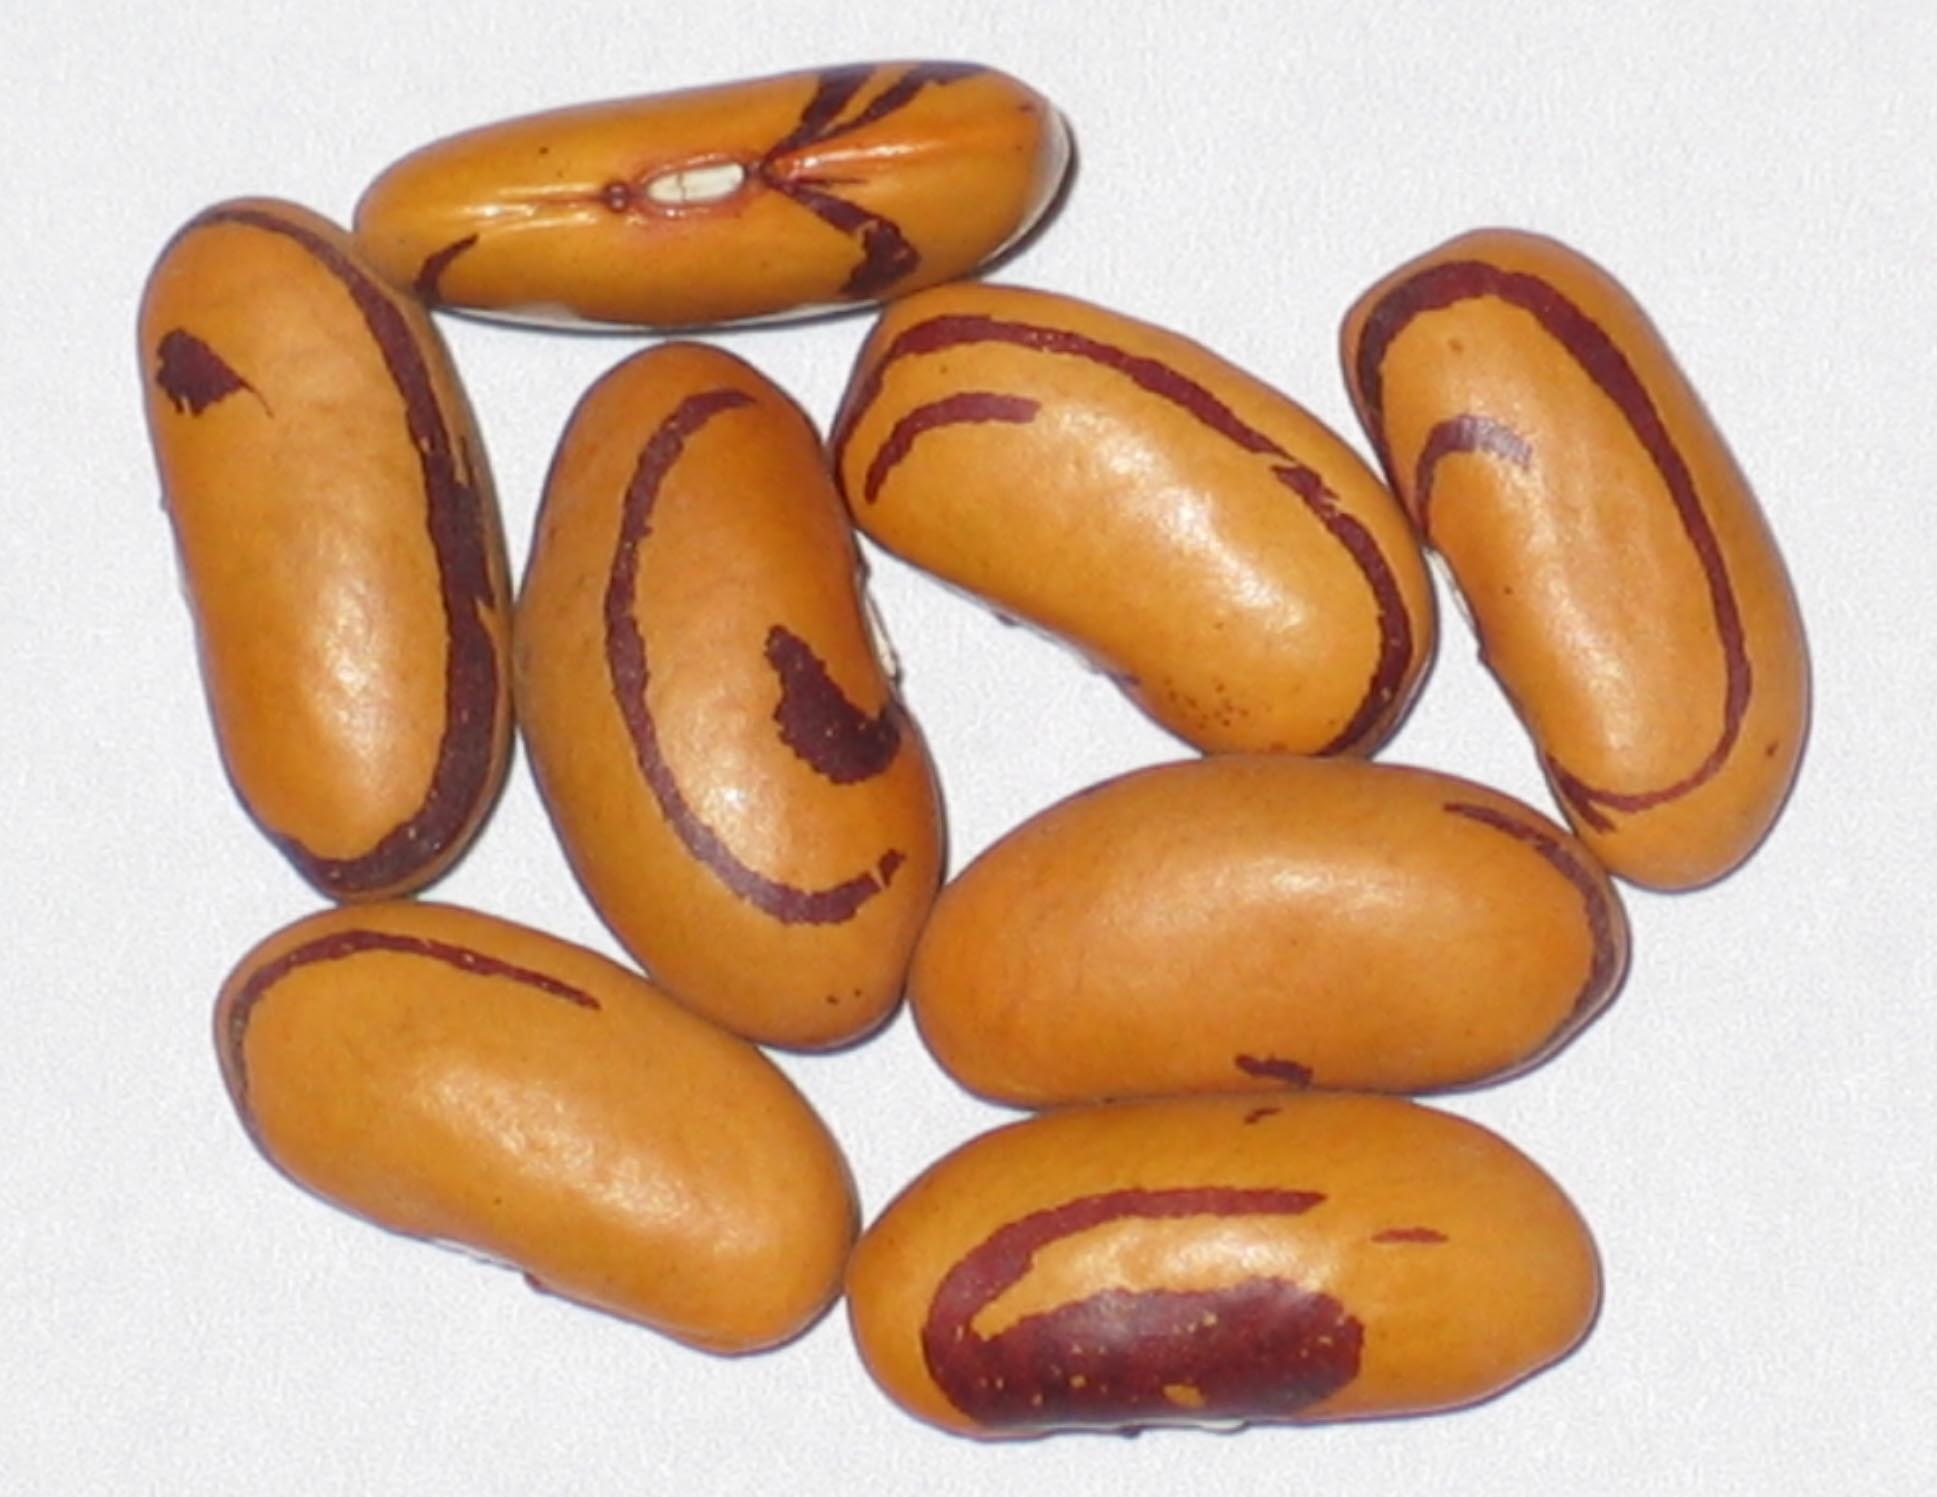 image of Tiger's Eye beans